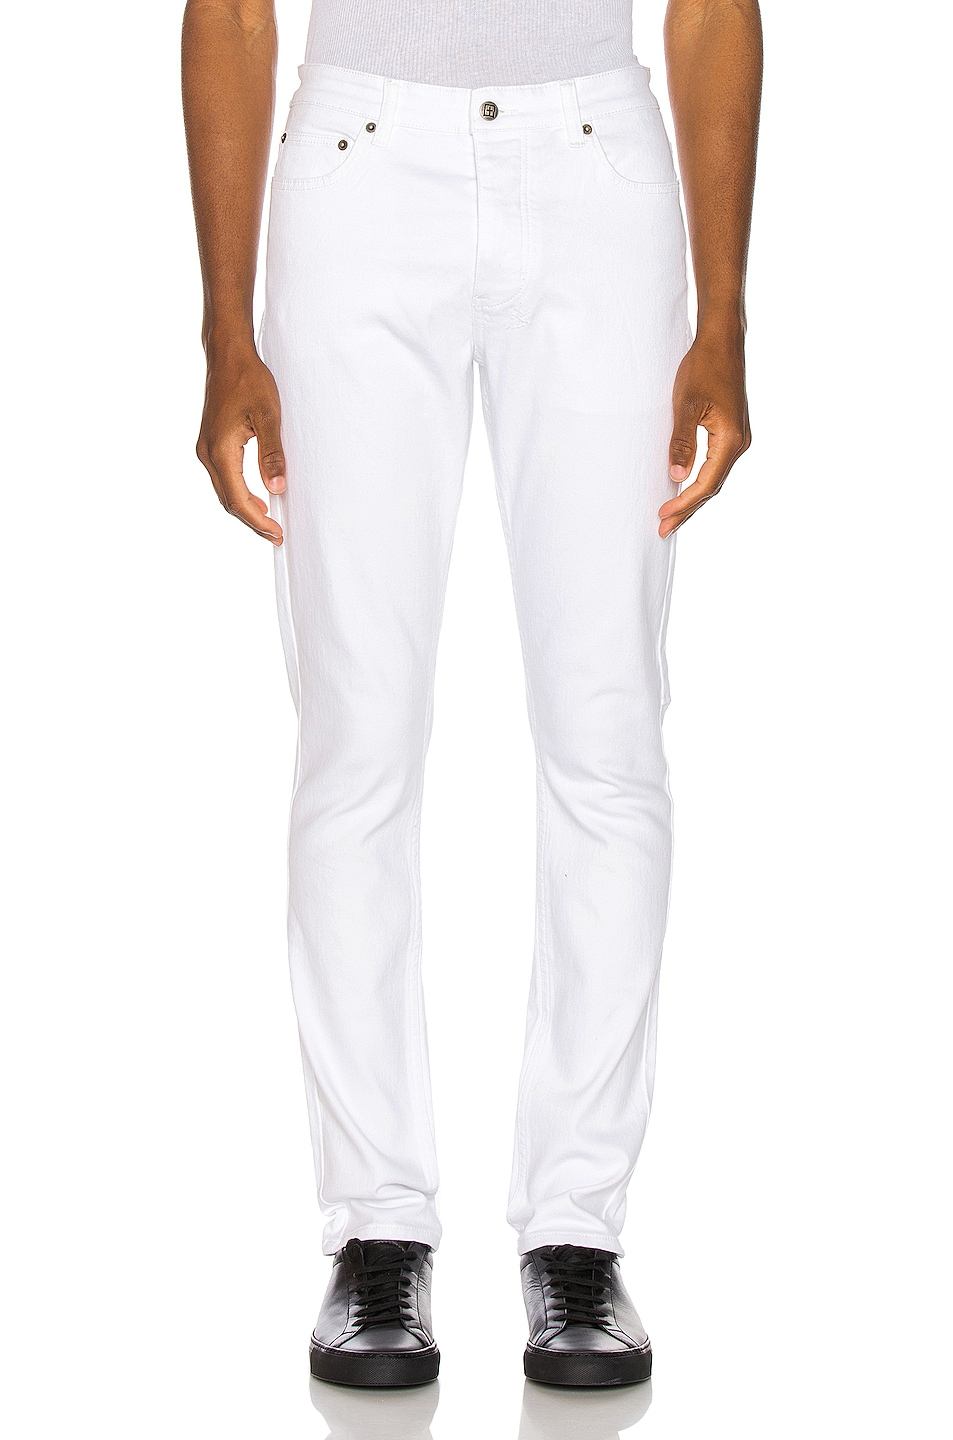 Image 1 of Ksubi Chitch Salt Jean in White